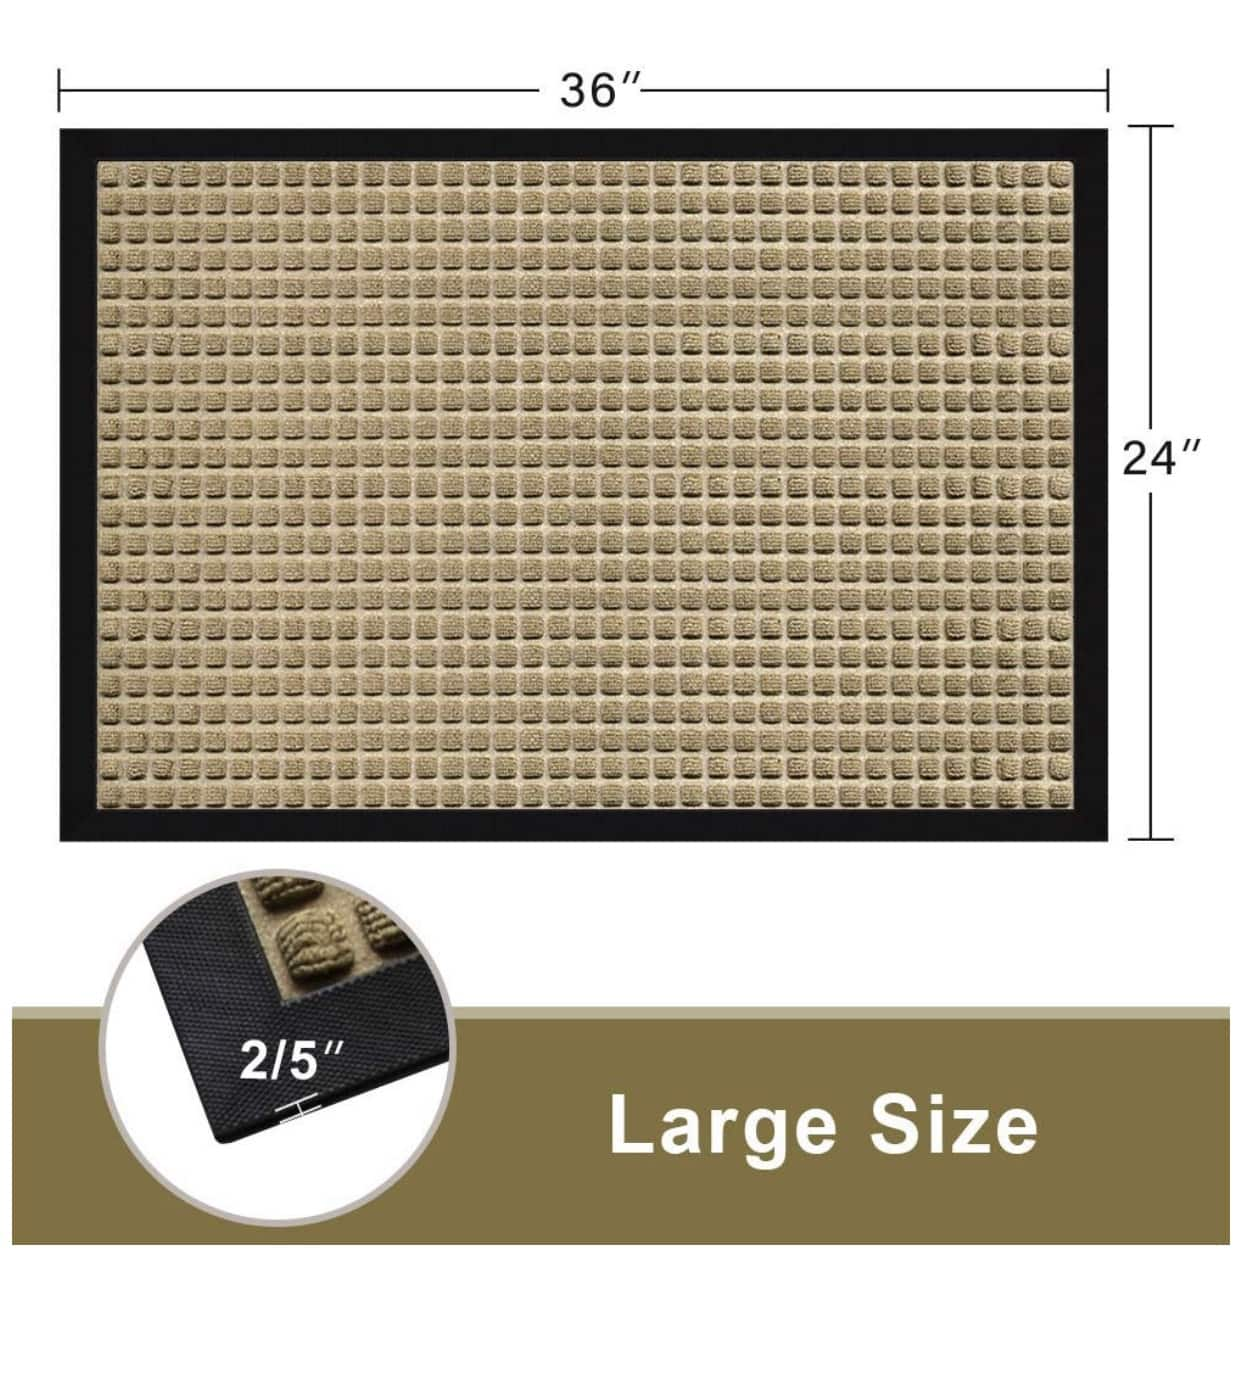 Amagabeli Large Outdoor Waterproof Rubber Door Mat 36X24 $16.49 AC